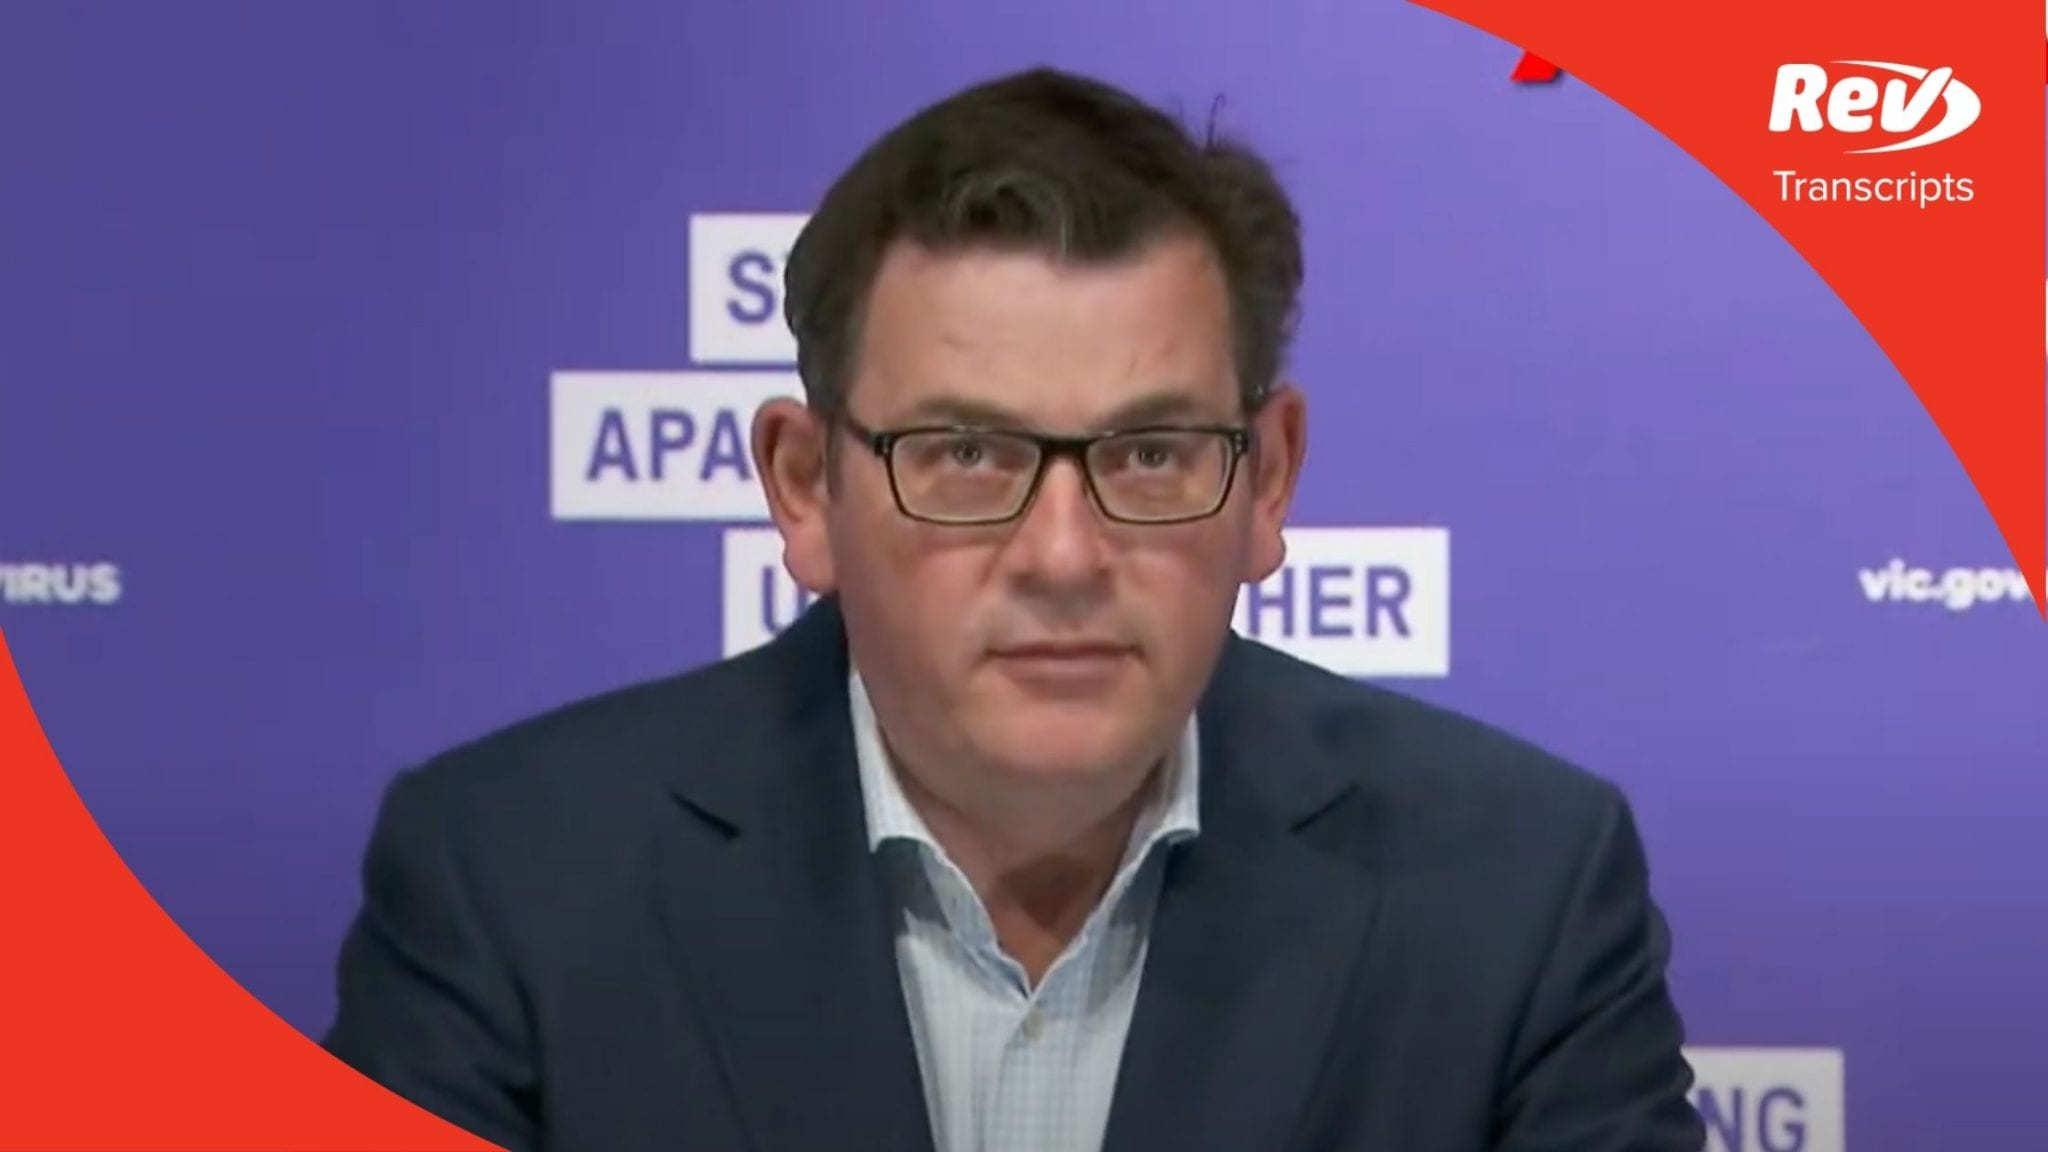 Victoria Premier Dan Andrews Press Conference Transcript August 25